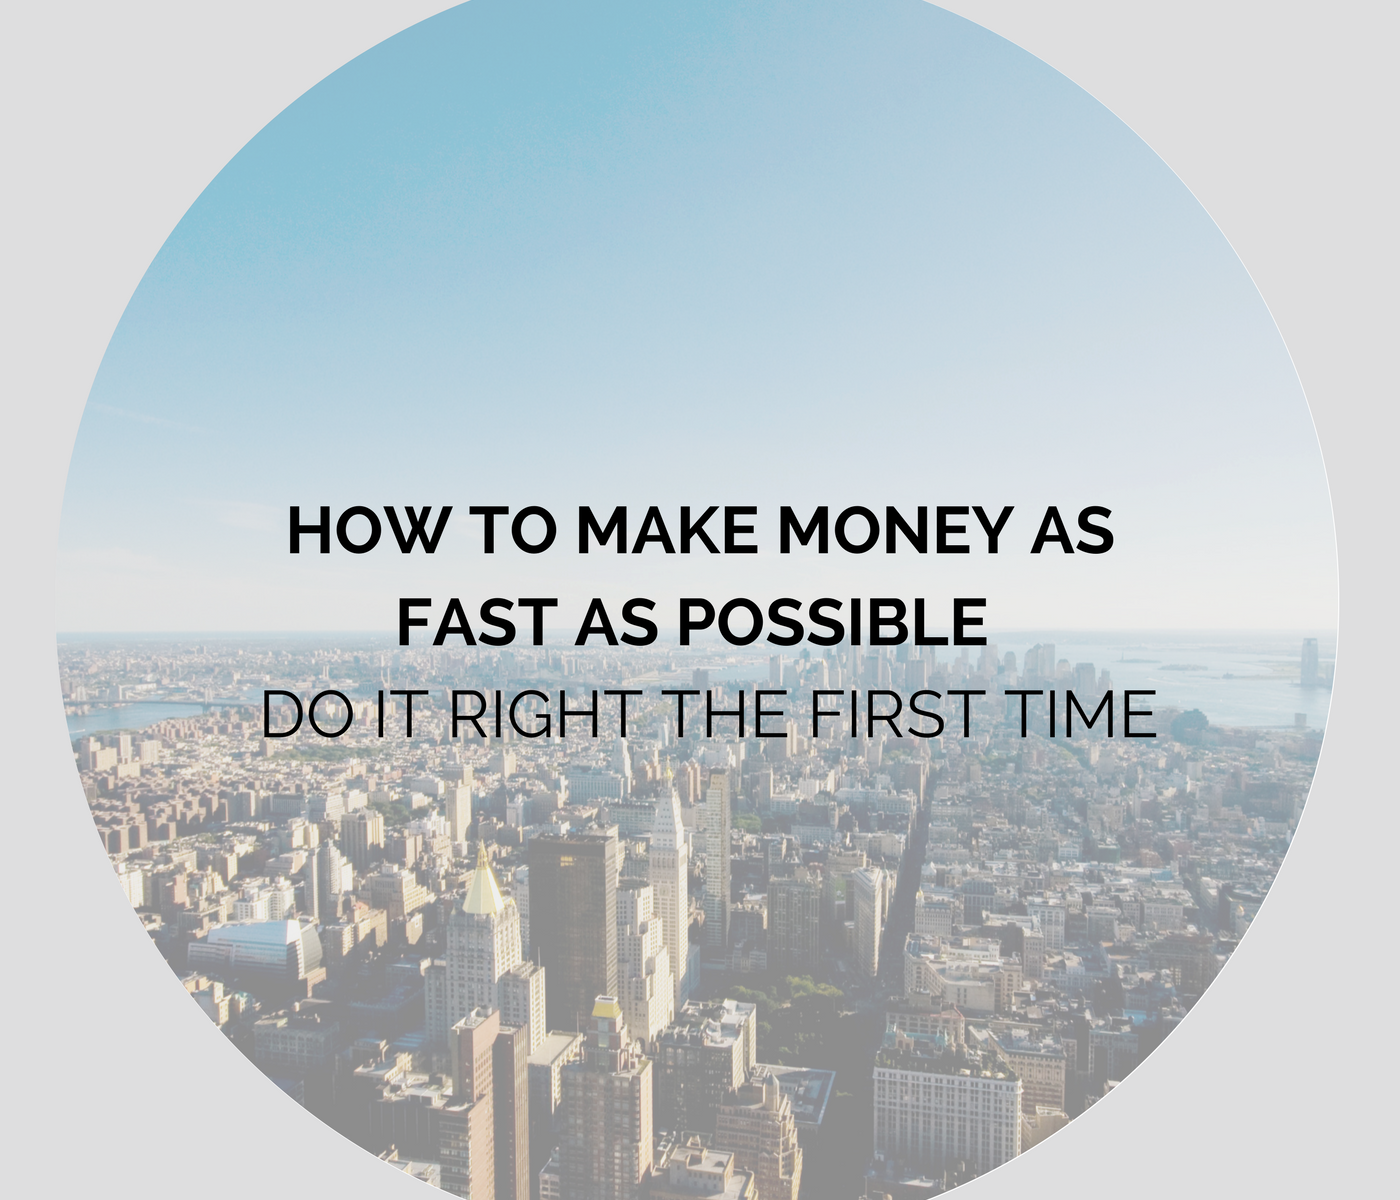 How to Make Money as Fast as Possible - Do It Right the First Time